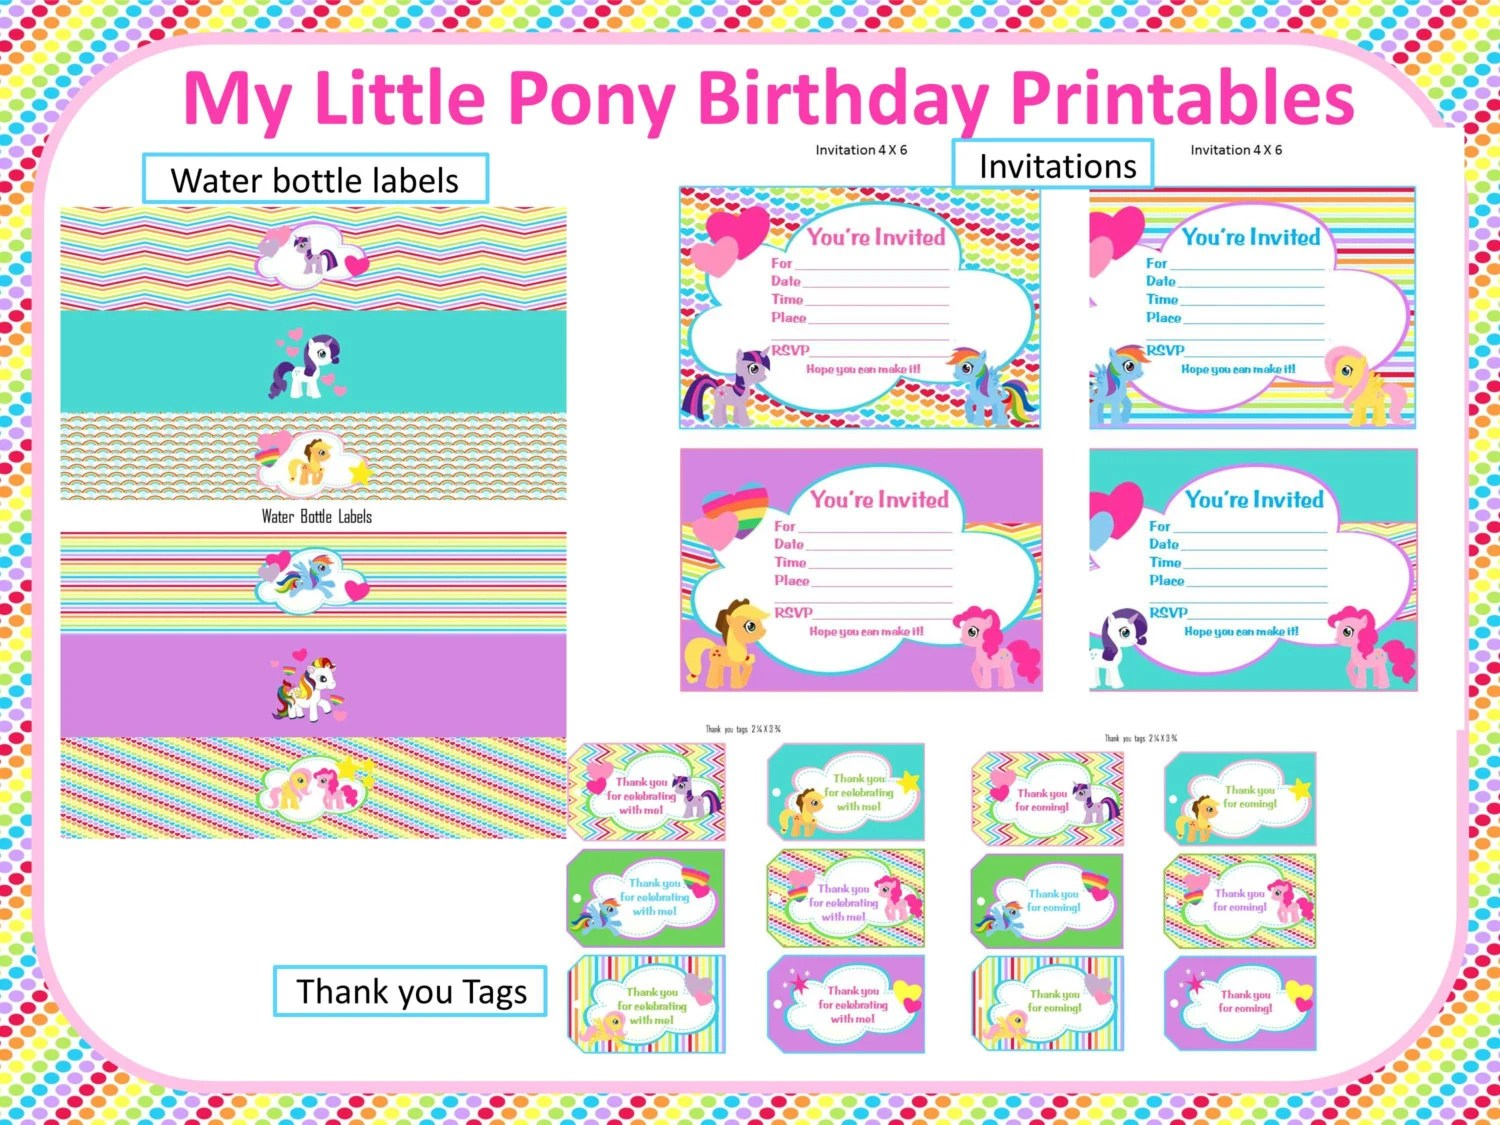 My Little Pony Rainbow Birthday Printables